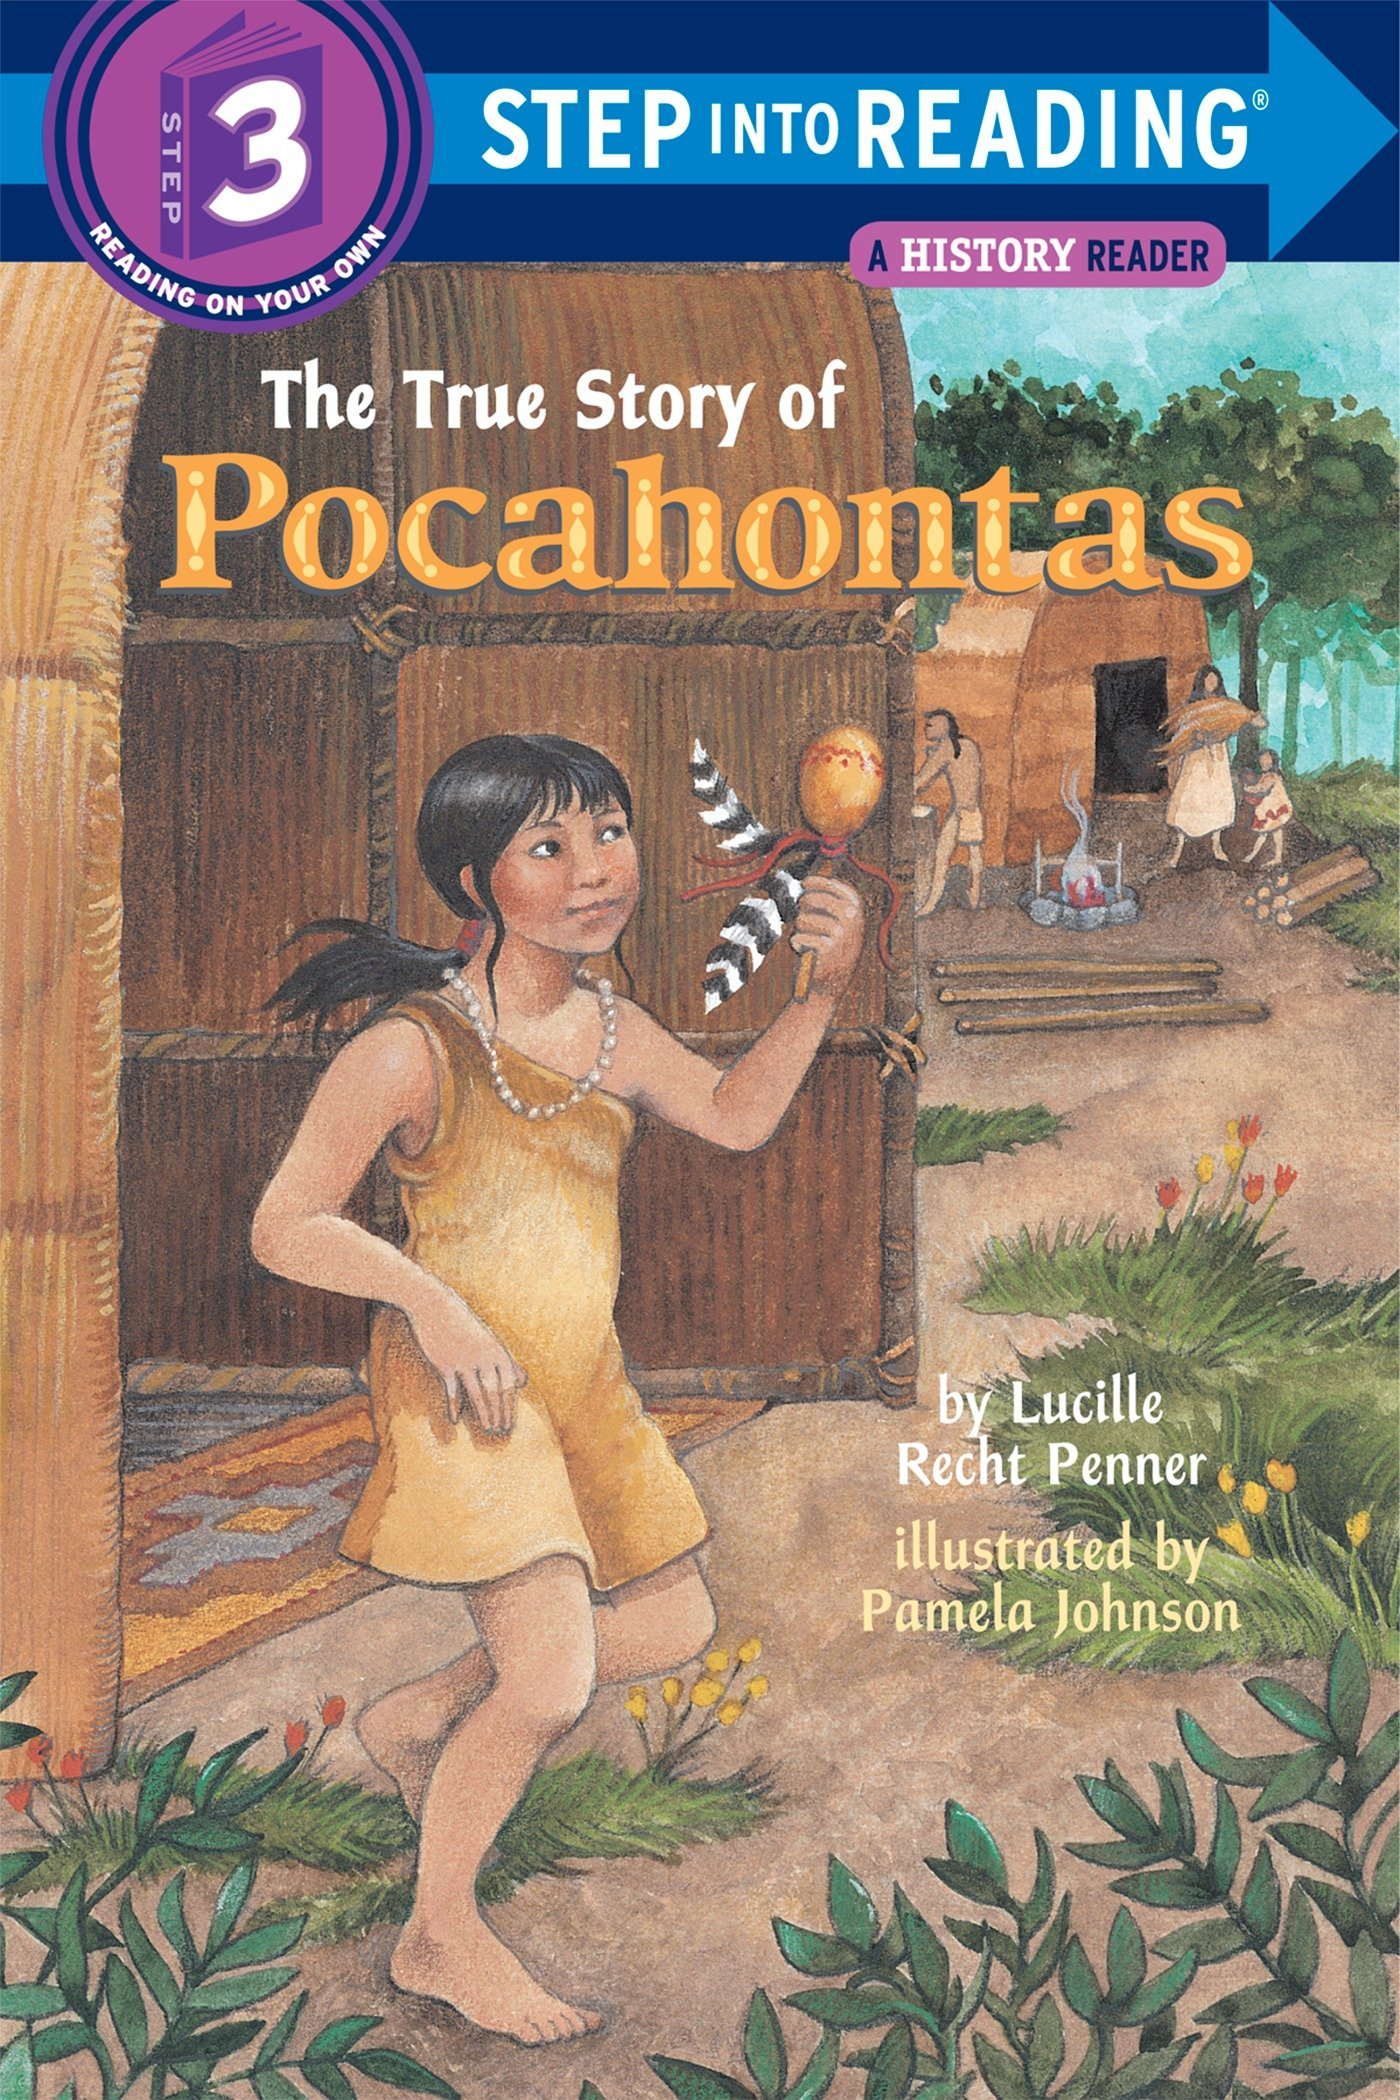 In naked indian pocahontas woods girl